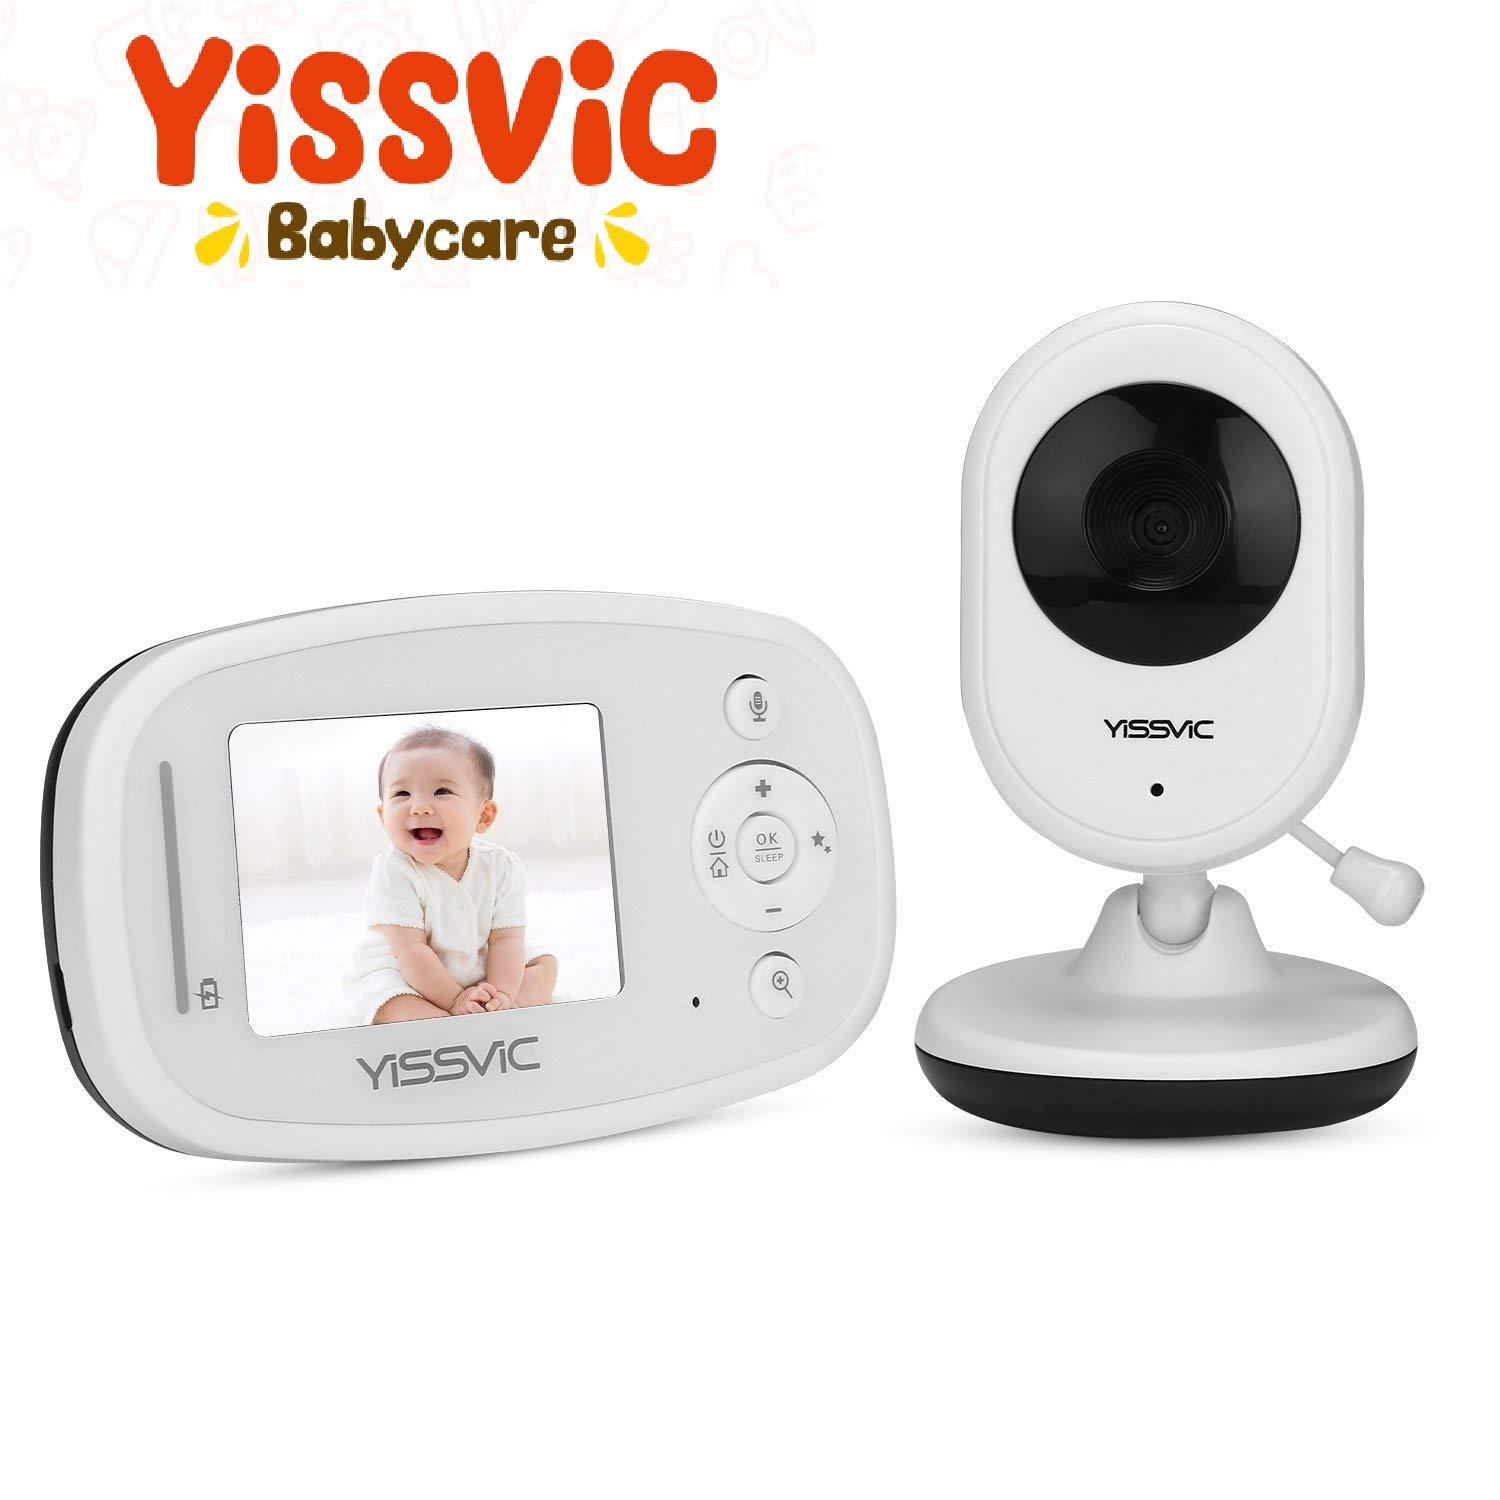 YISSVIC Baby Monitor Wireless 2.4 Inch with Camera HD Digital Video Two Way Talk Night Vision White Smile&Satisfaction